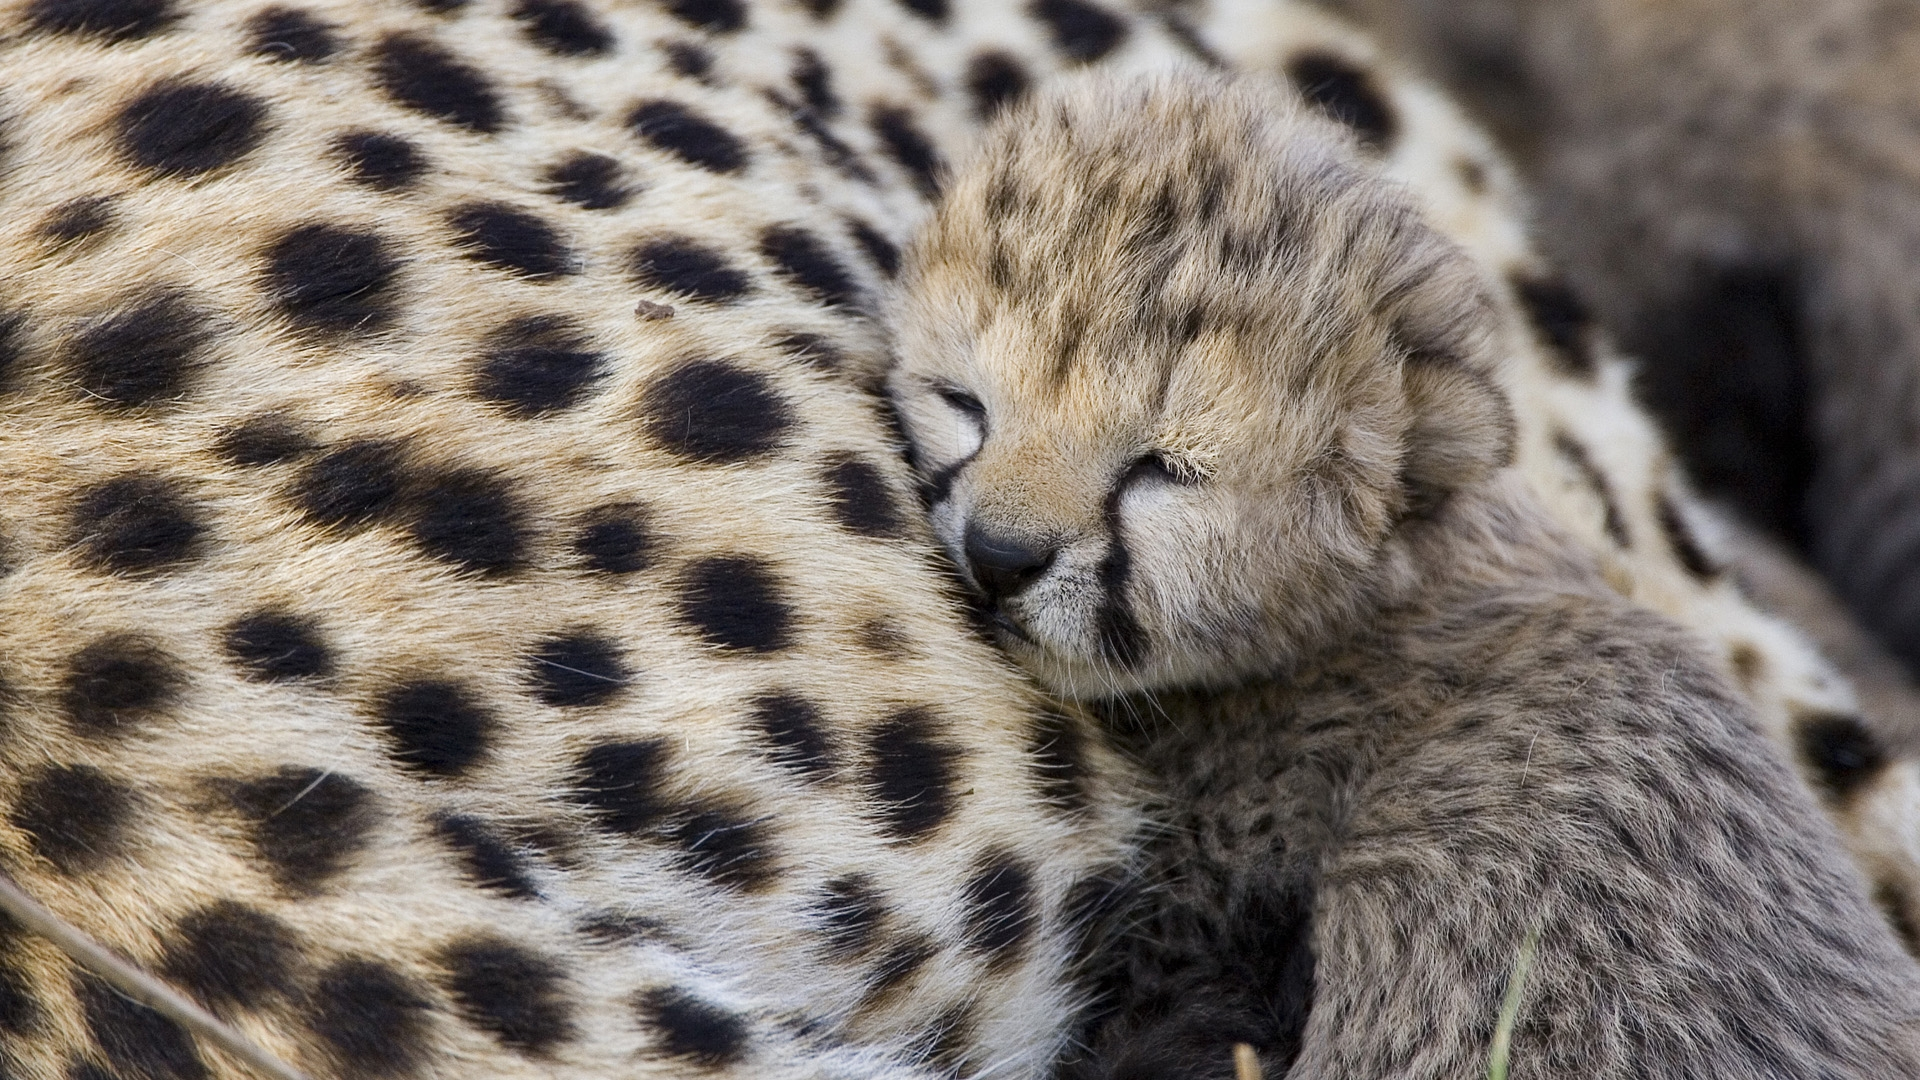 Adorable Baby Cheetah Wallpaper